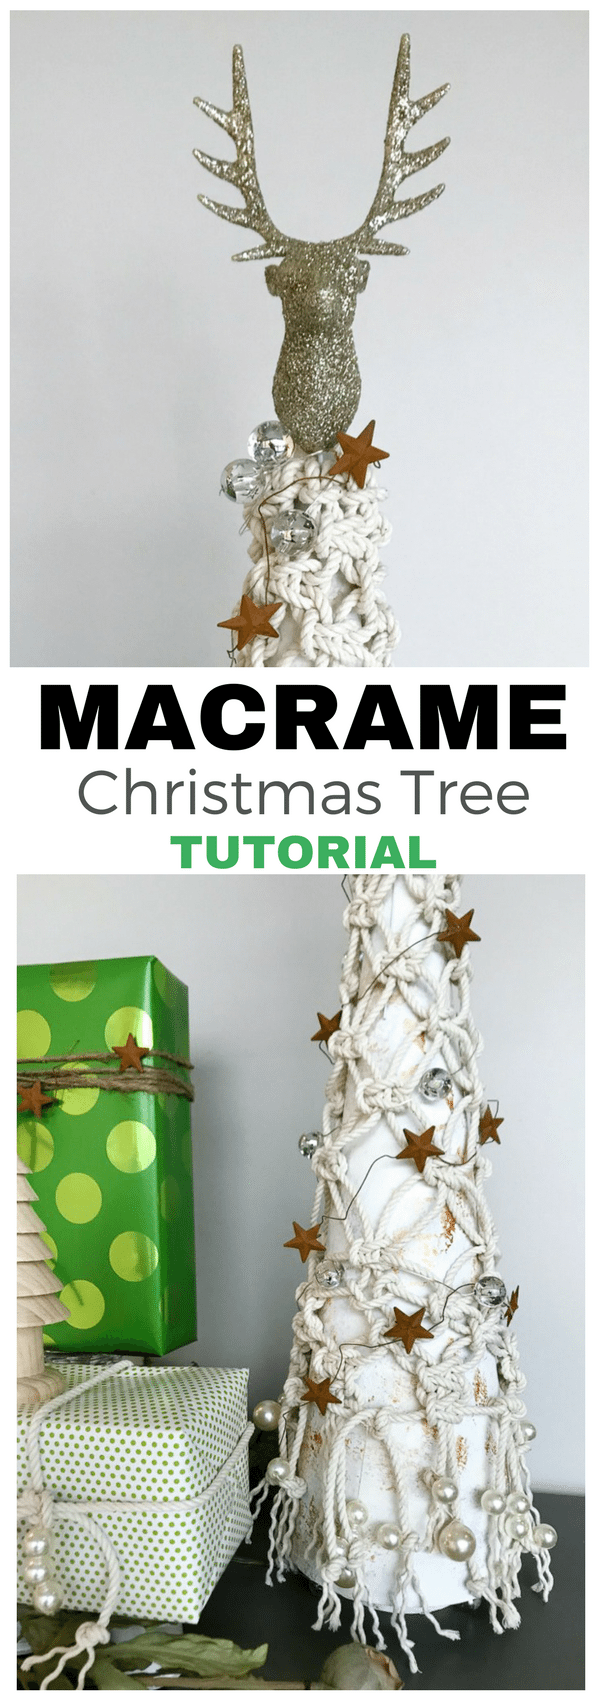 Check out this darling Macrame Christmas Tree tutorial. This creative DIY sparkles!